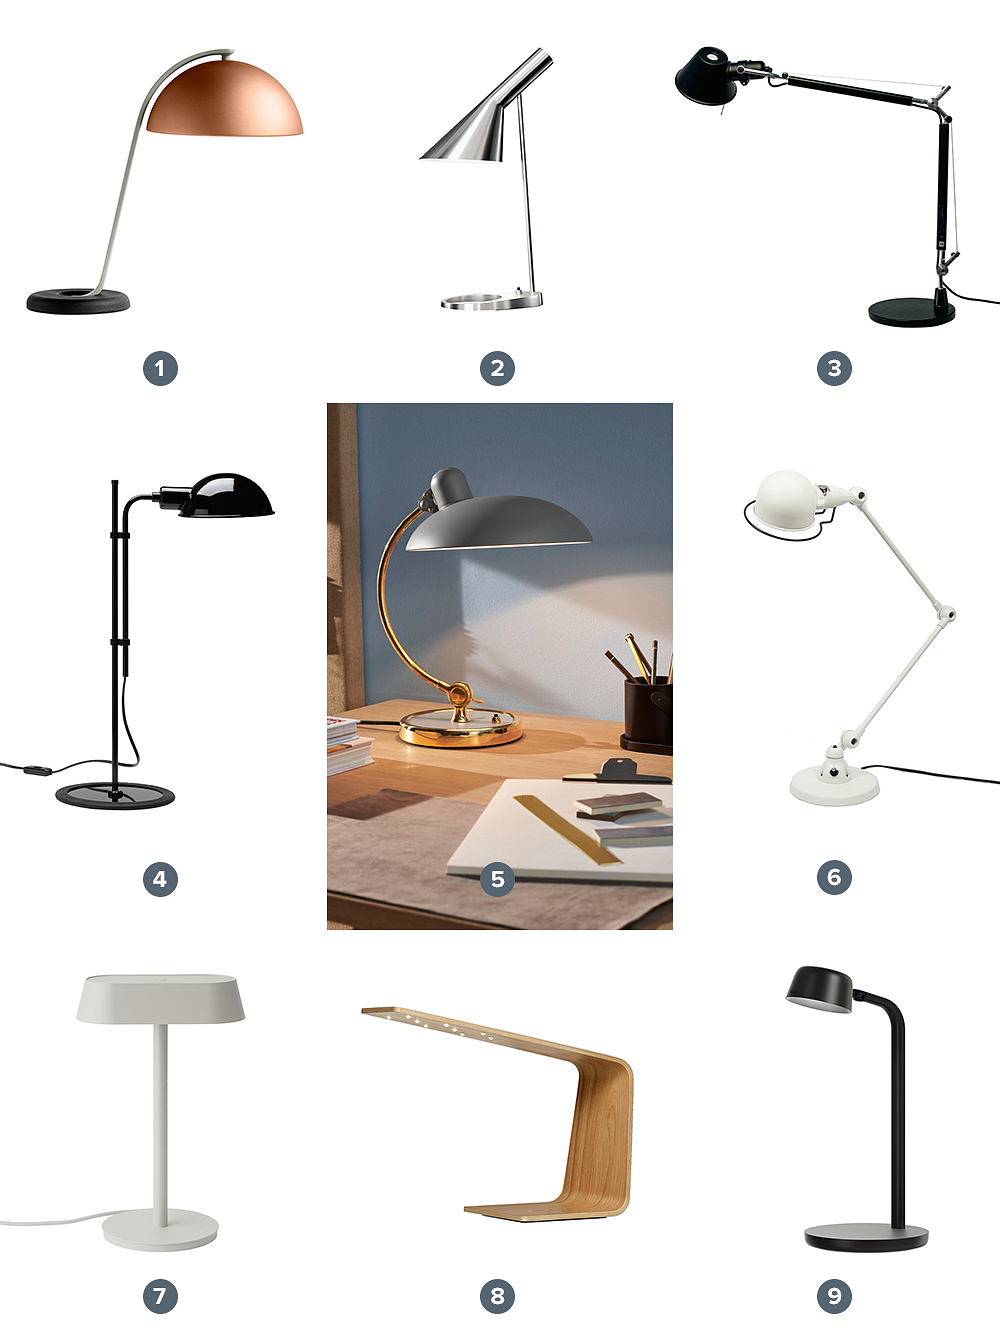 Table lamps at Finnish Design Shop